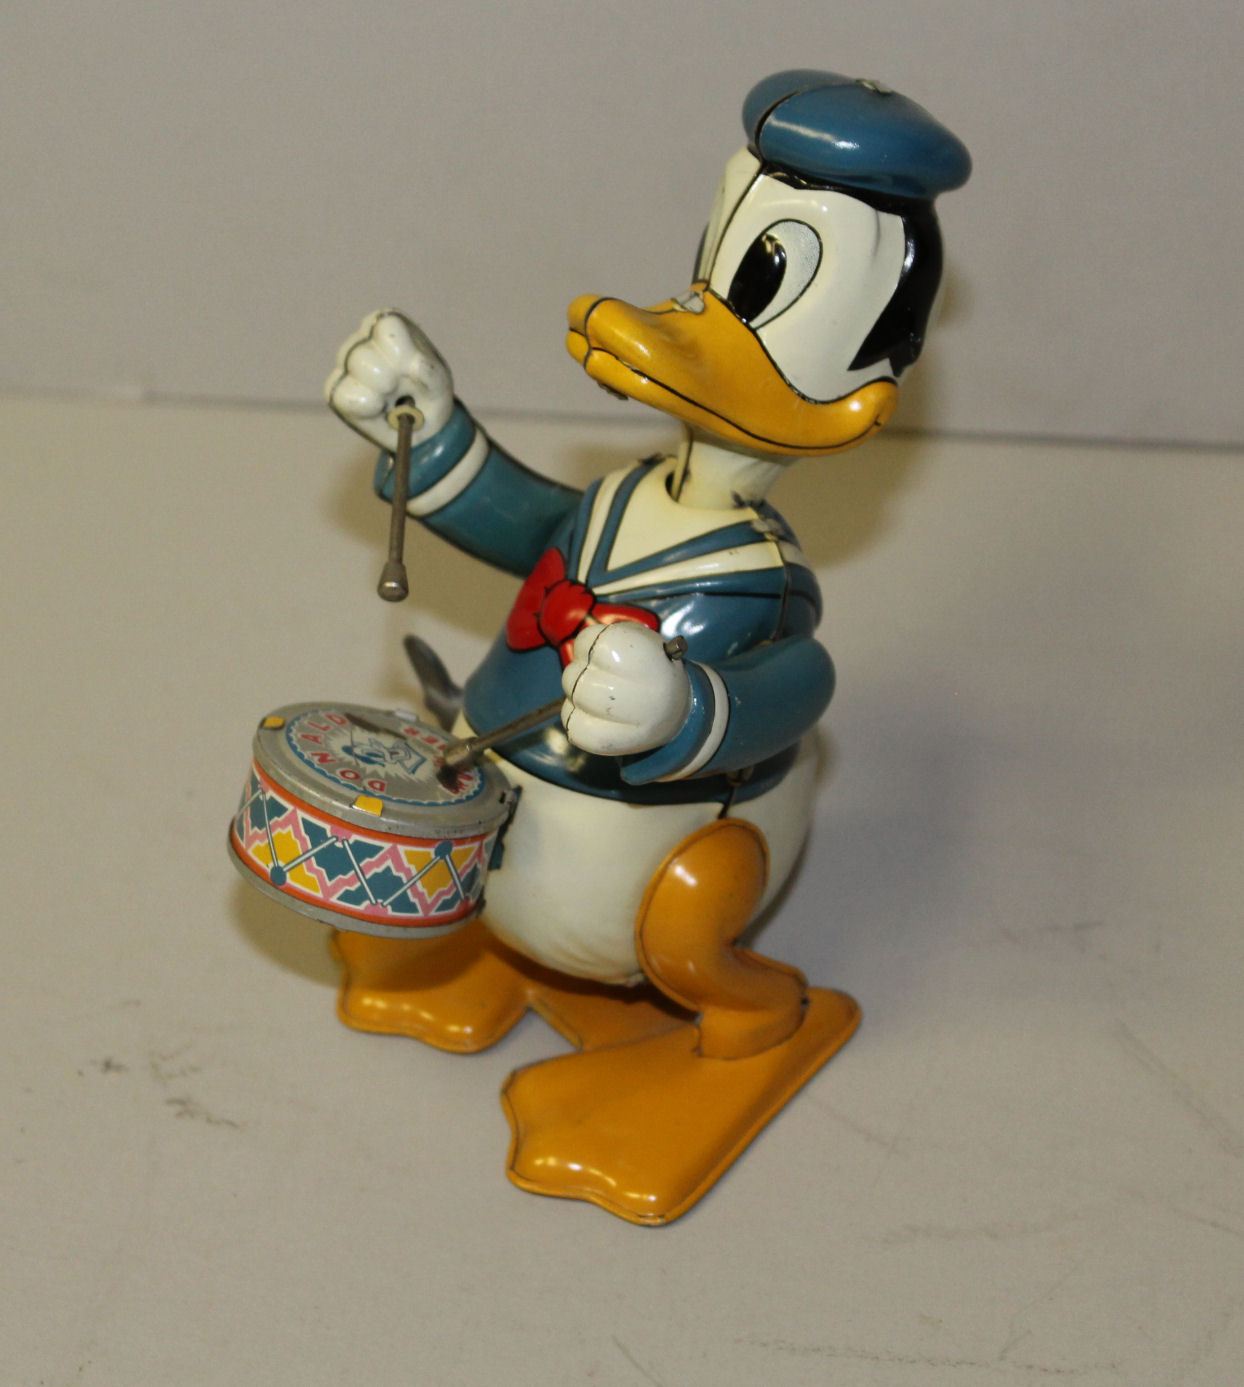 Bargain Johns Antiques  Antique toy Donald Duck Tin Wind Up Walking Drummer Line Mar Toys